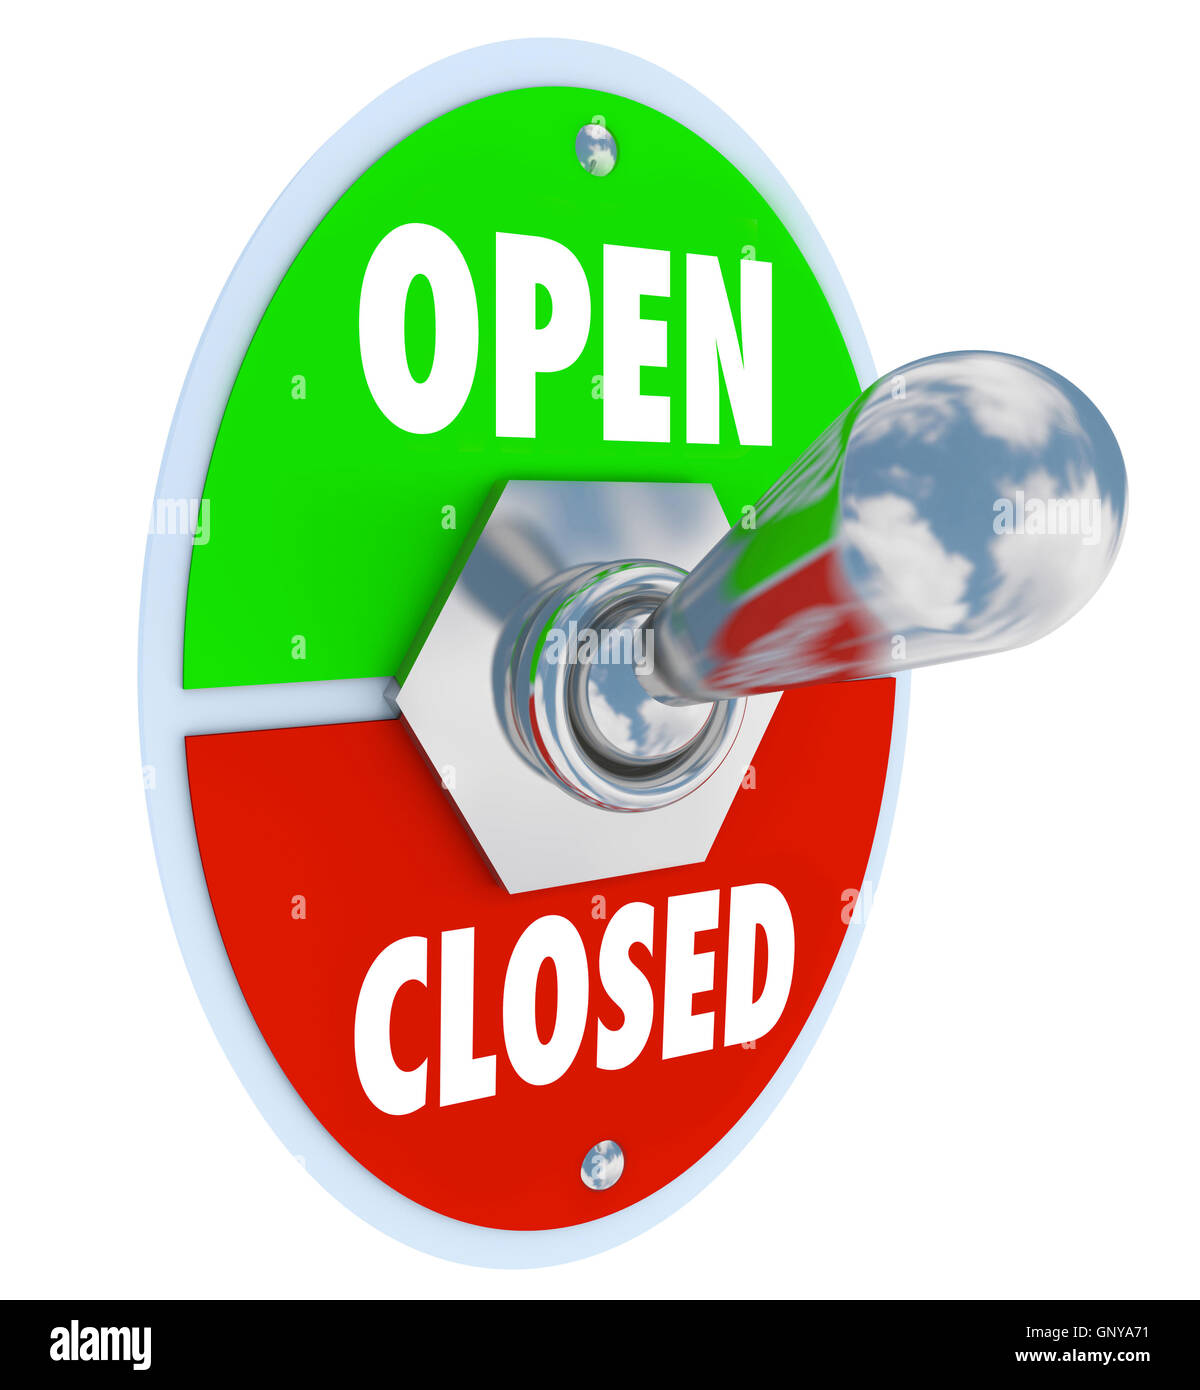 Open Vs Closed Toggle Switch Opening Store Business - Stock Image